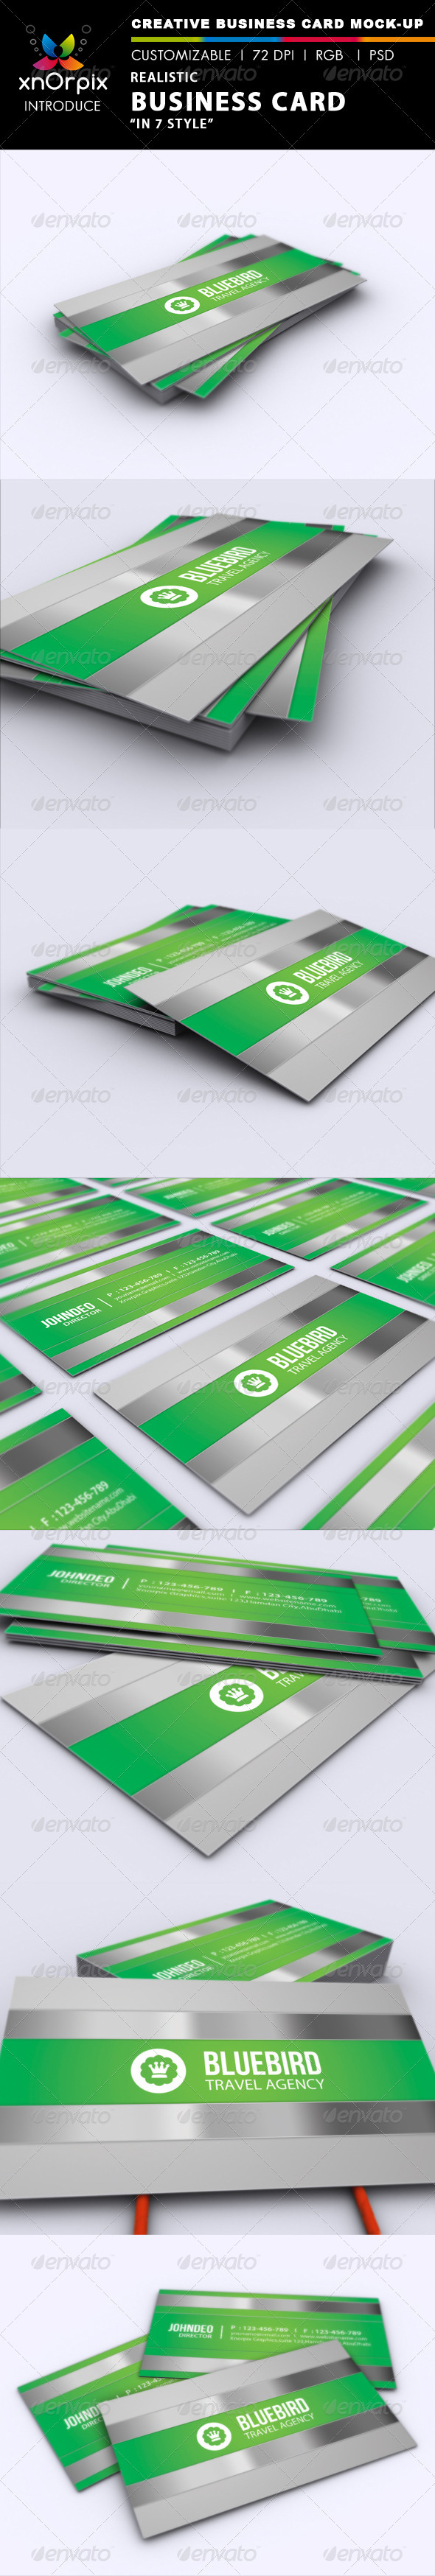 GraphicRiver Realistic Business Card Mock-up 2452233